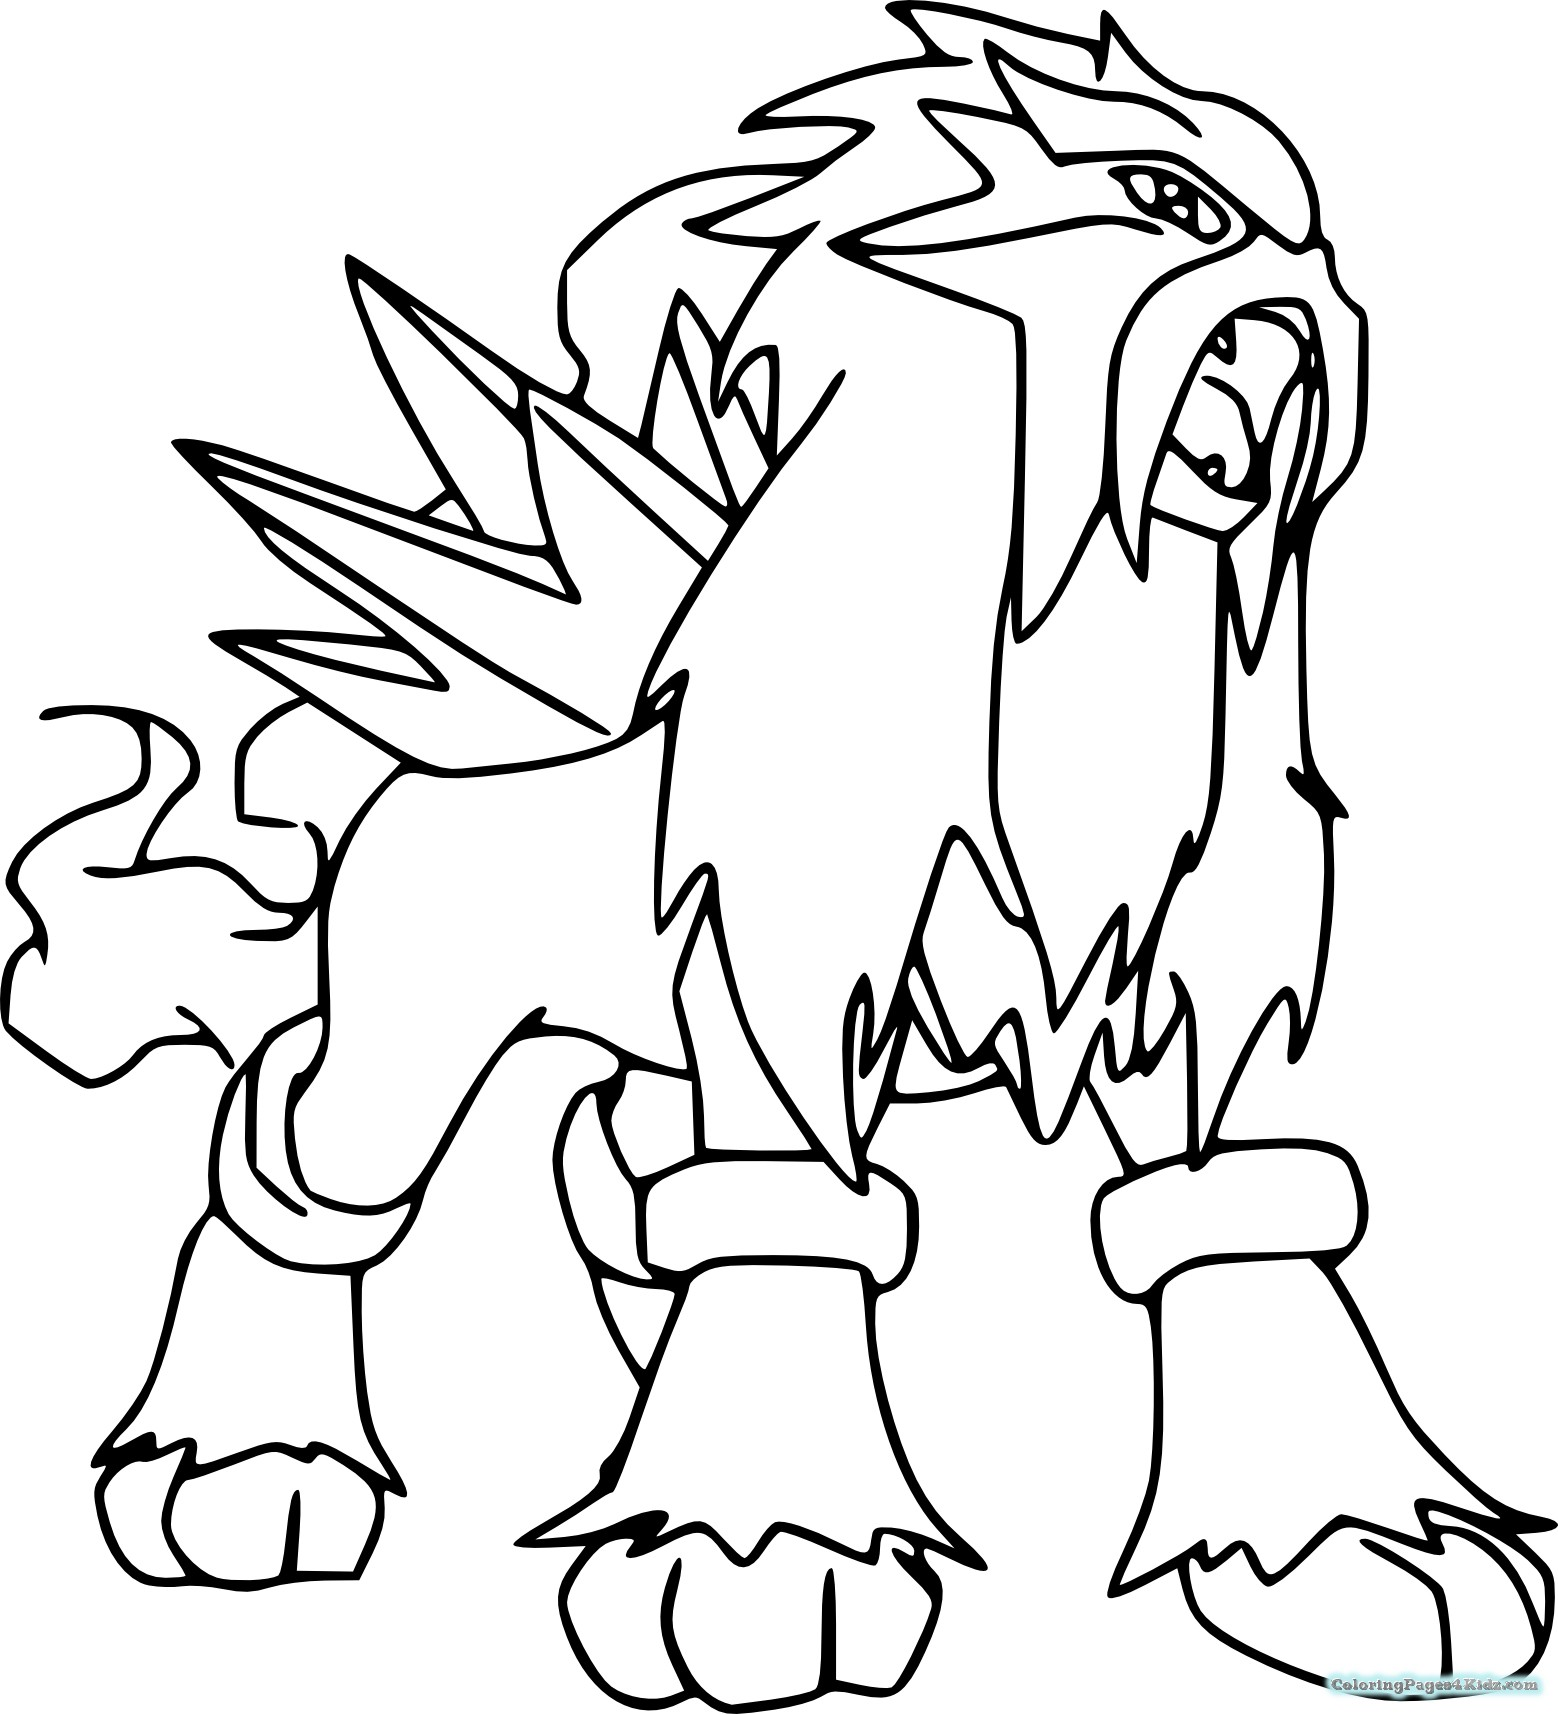 pokemon color pokemon coloring pages join your favorite pokemon on an pokemon color